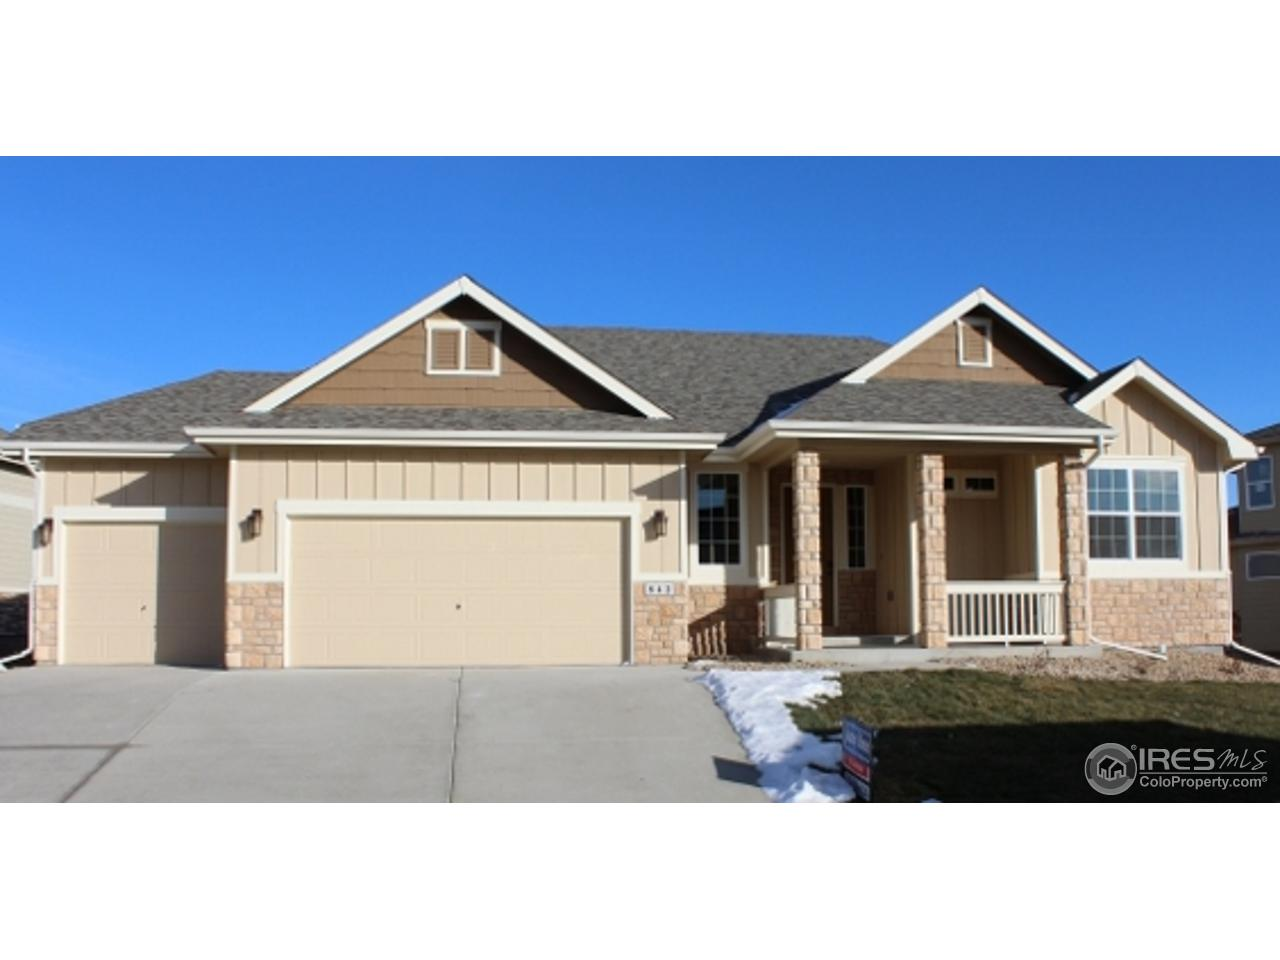 842 Corn Stalk Dr, Windsor, CO 80550